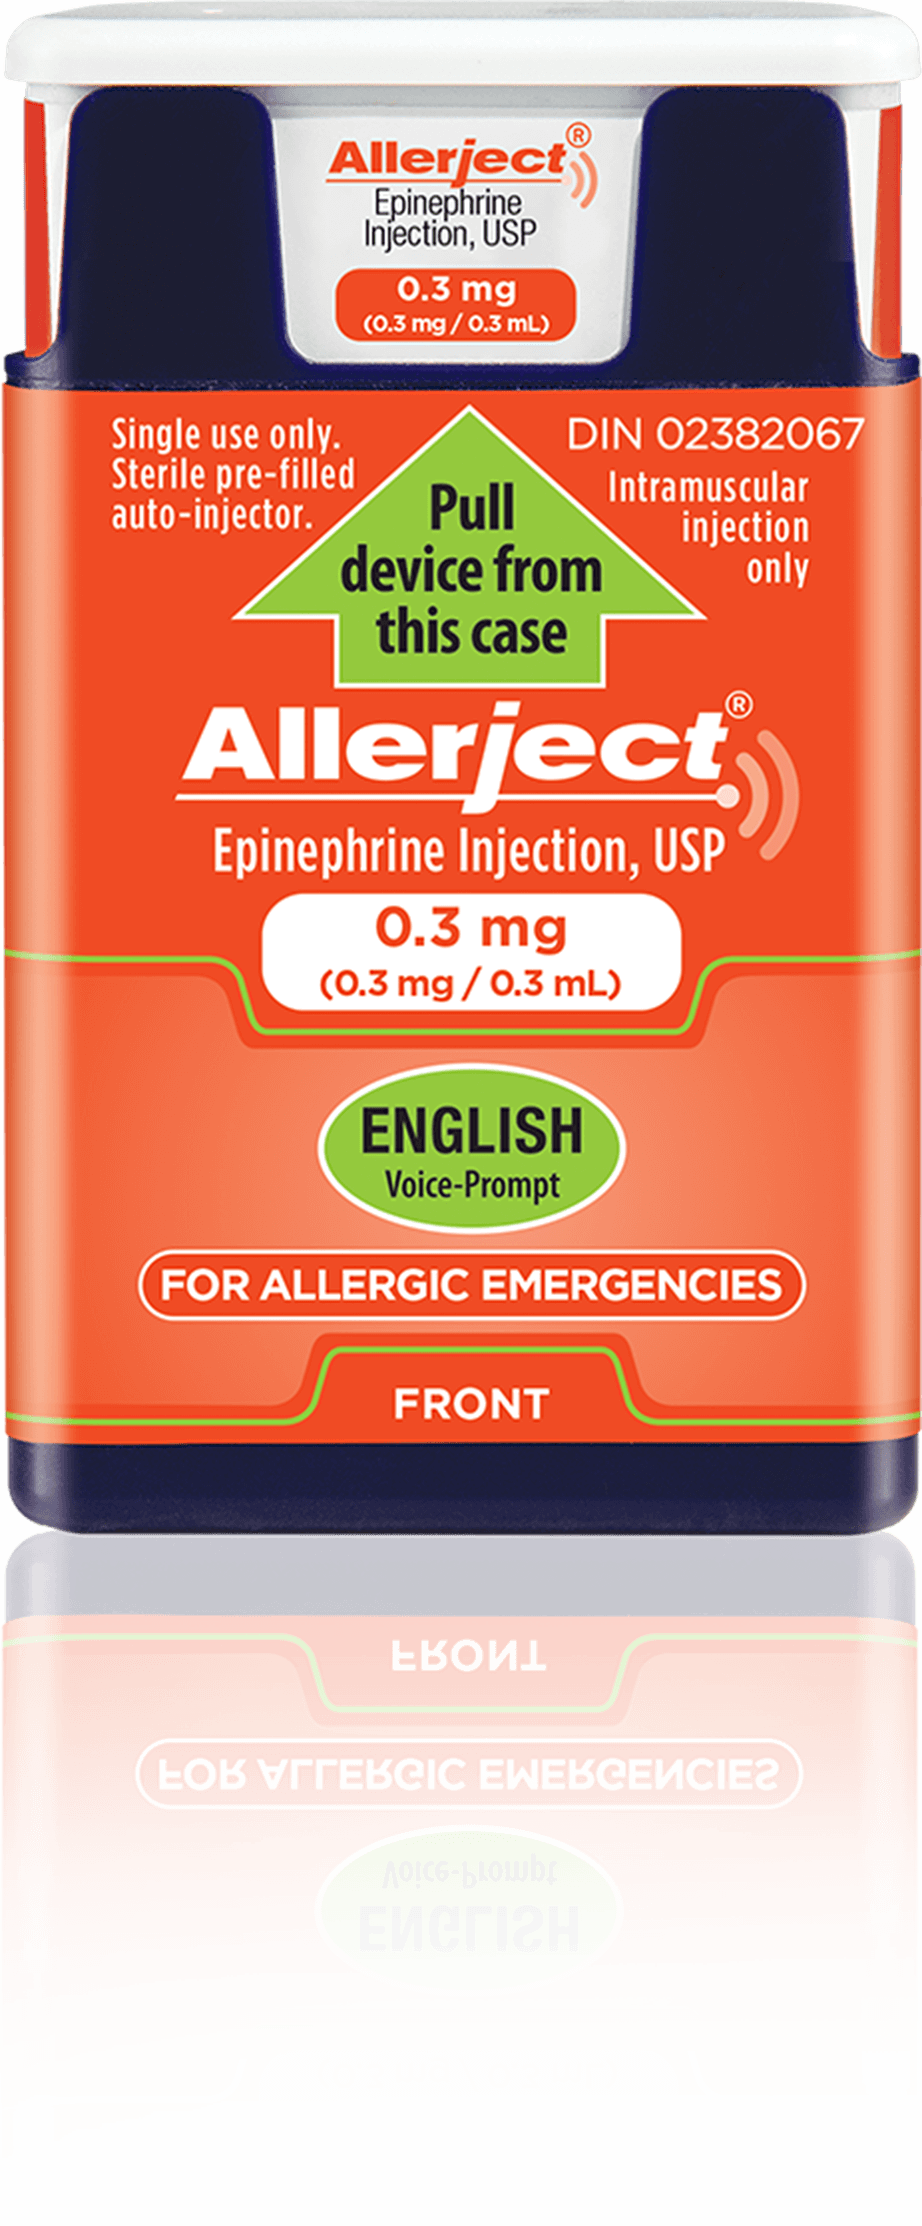 A 0.3 mg ALLERJECT device with the expiry date circled.